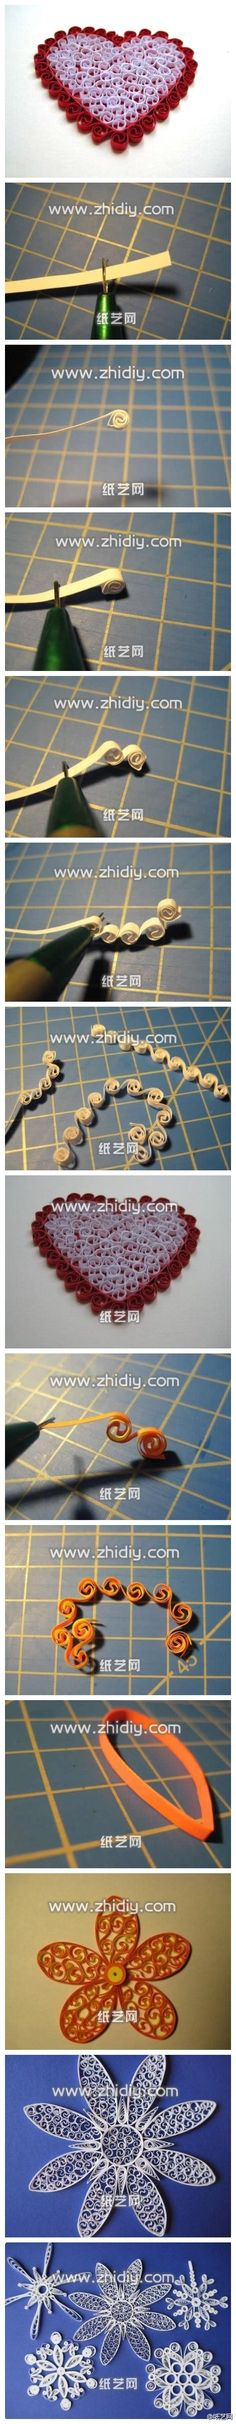 Heart quilling